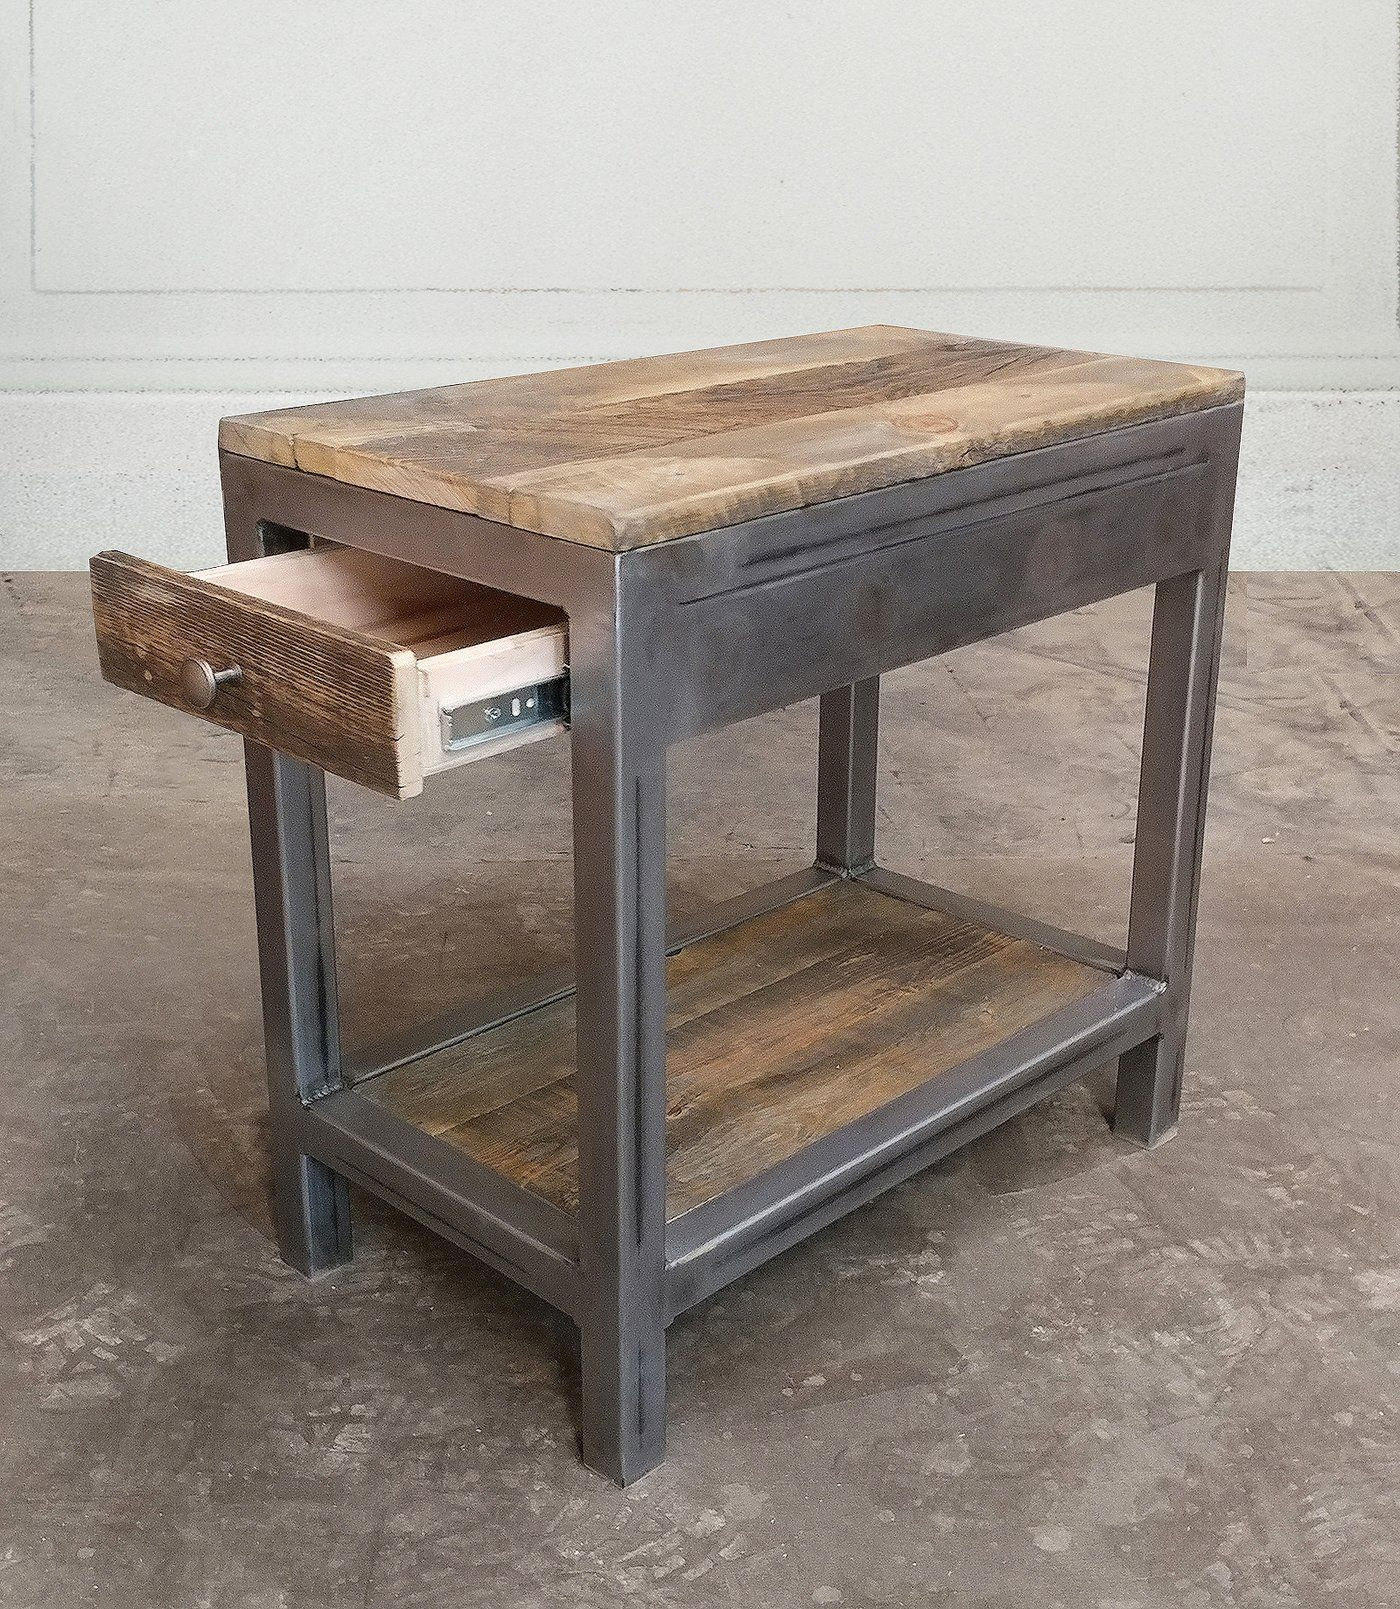 Reclaimed Wood And Metal End Table With Storage Metal End Tables End Tables With Drawers End Tables With Storage